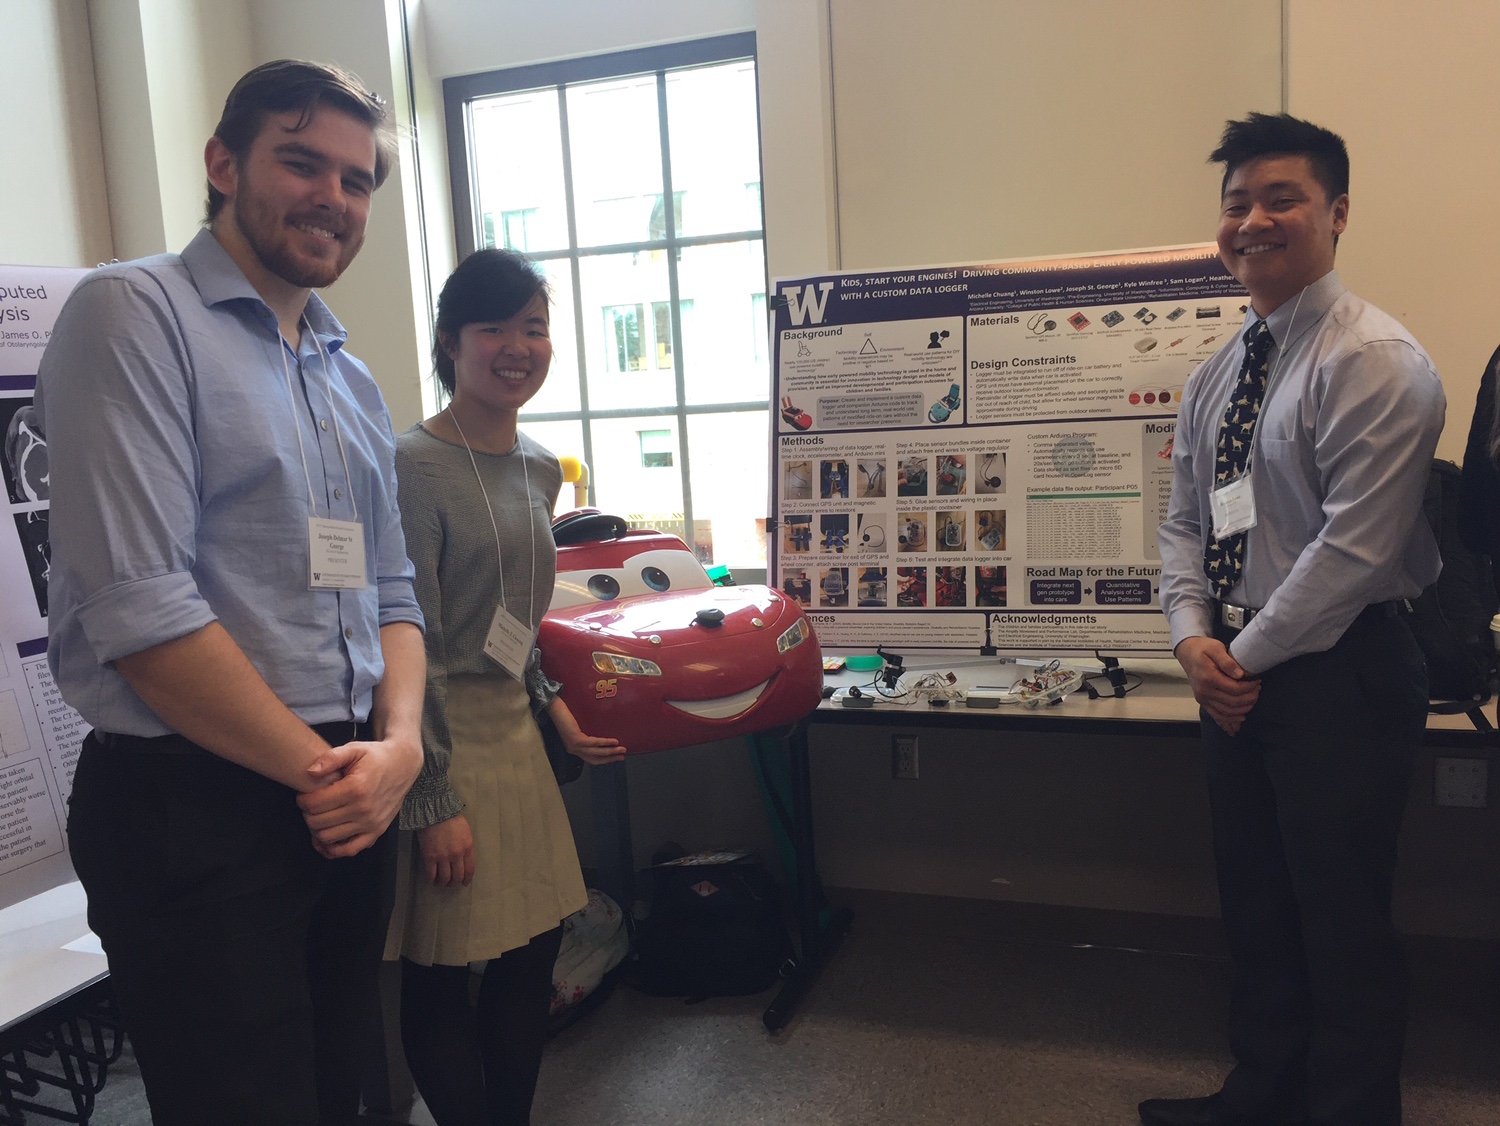 Joseph, Michelle, and Winston rocking their poster presentation!